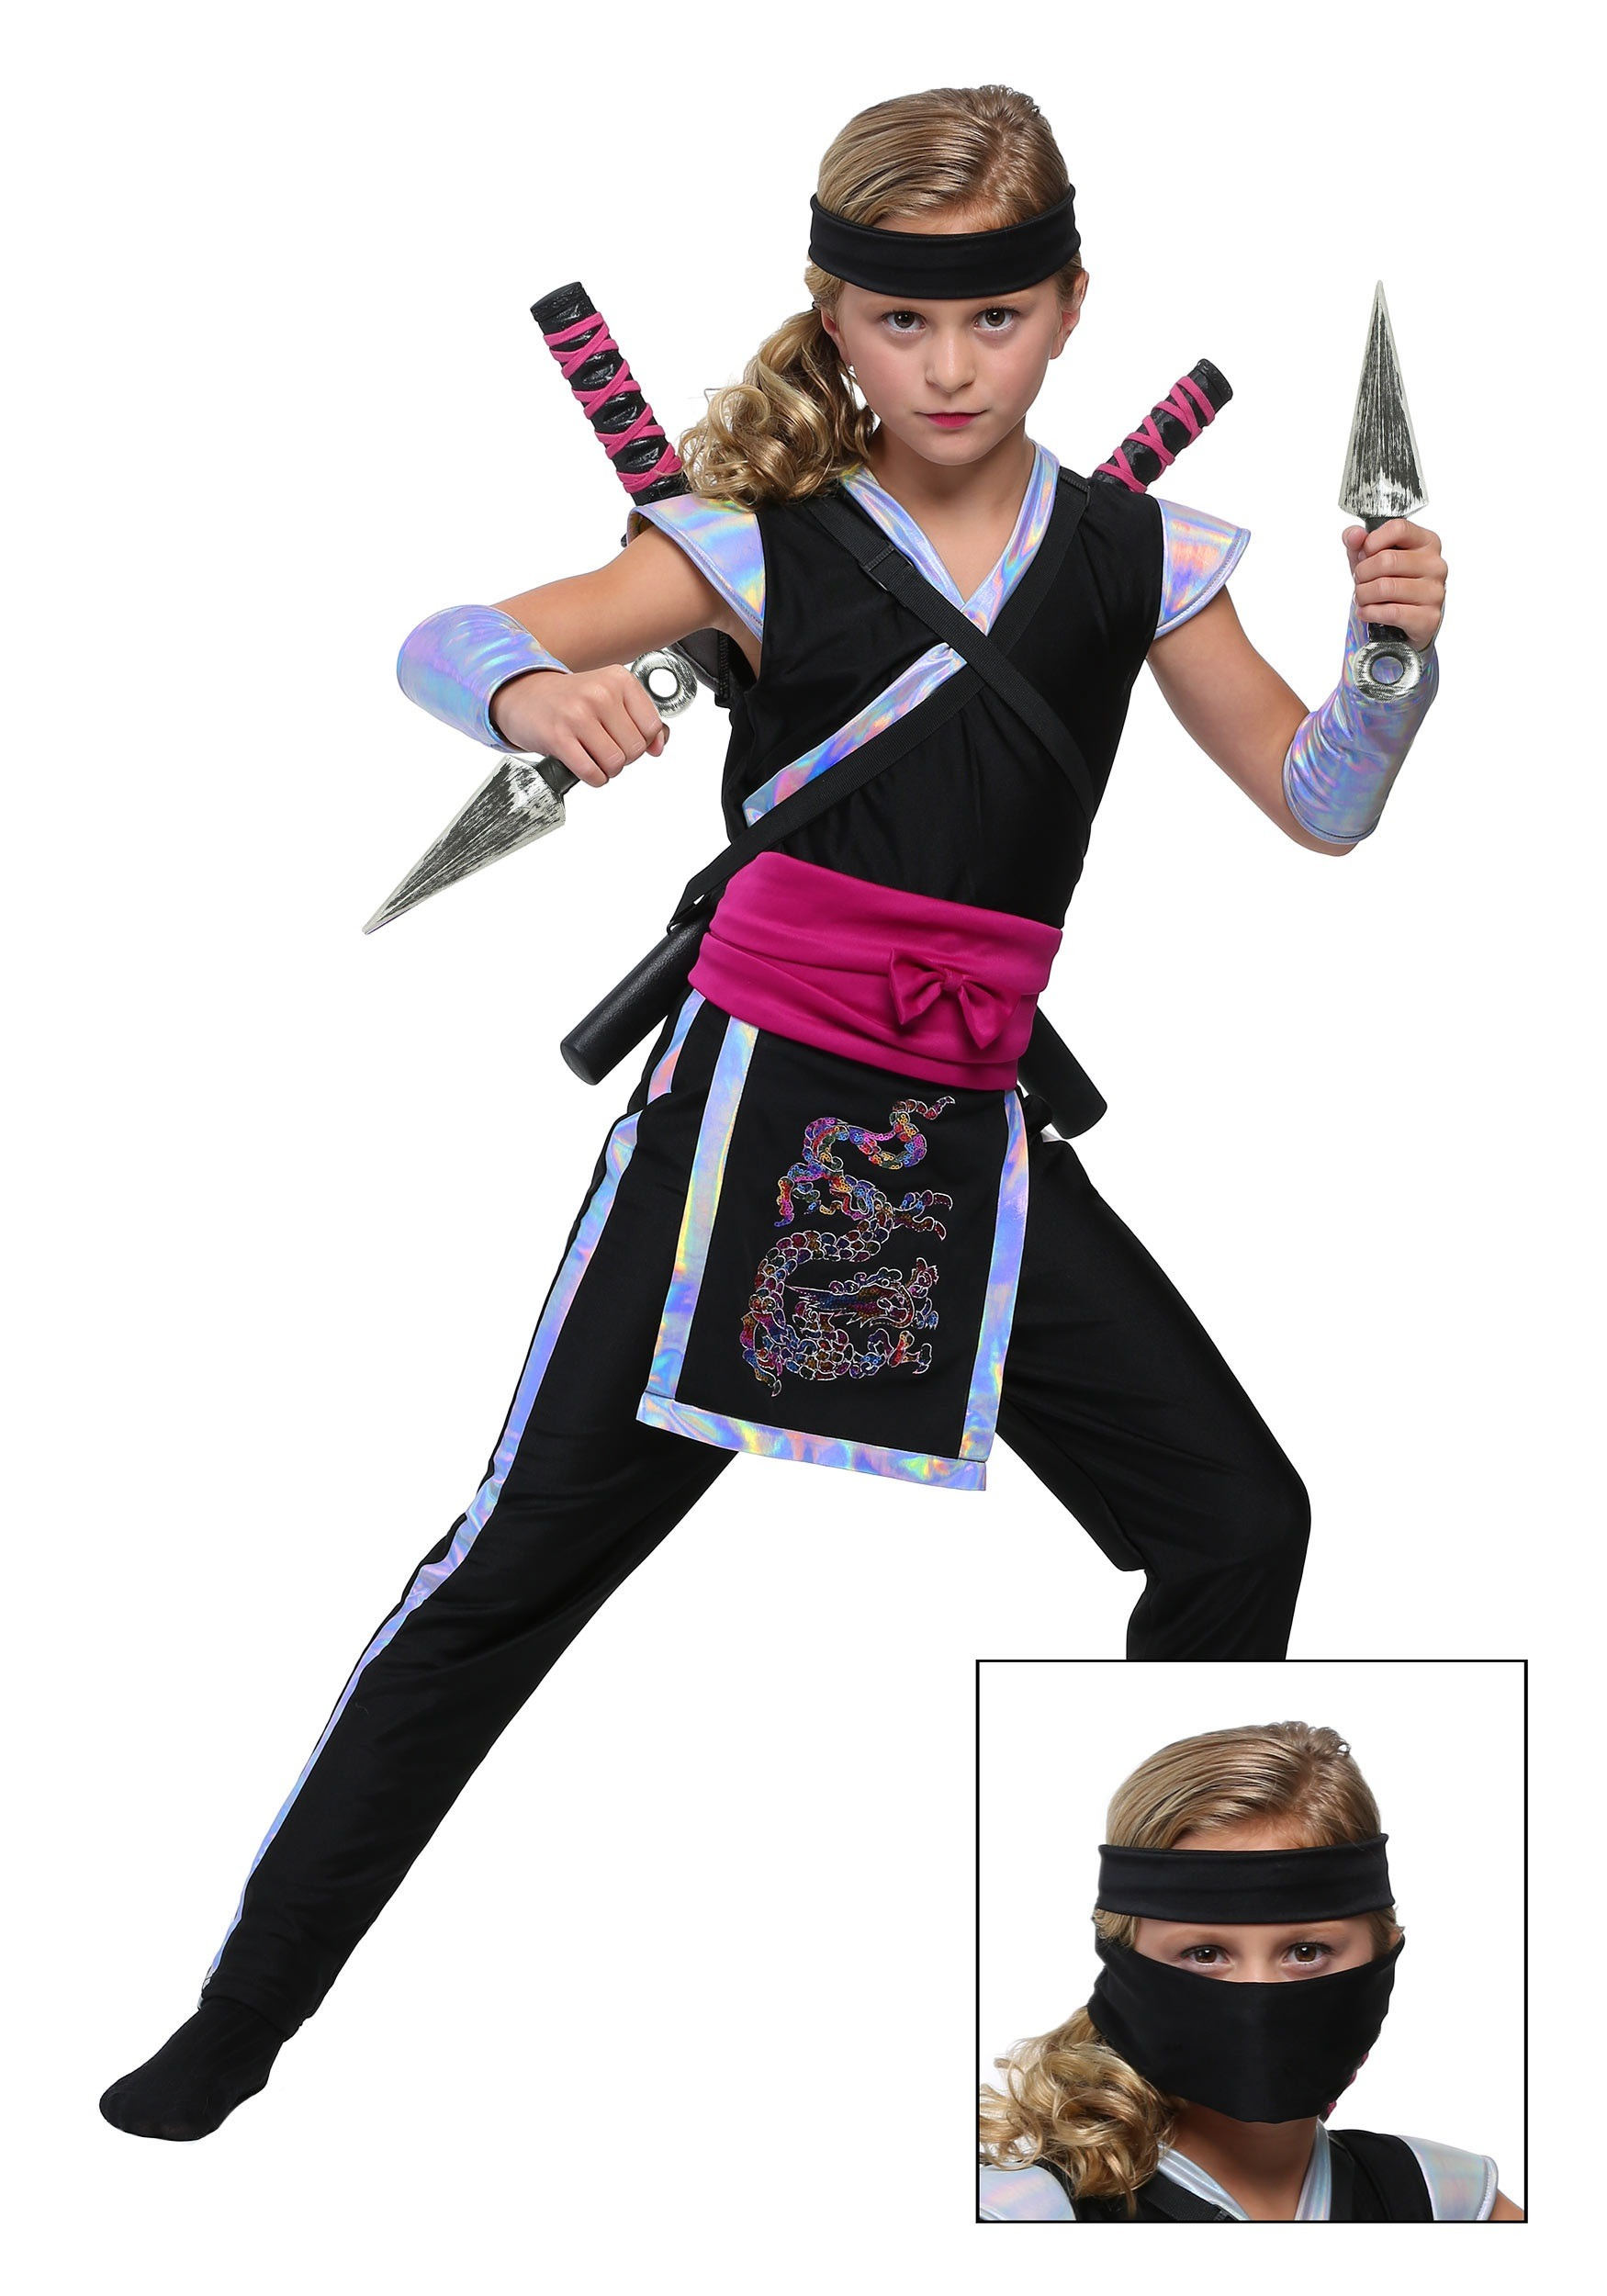 Girlu0027s Rainbow Ninja Costume  sc 1 st  Halloween Costumes & Rainbow Ninja Costume for Girls